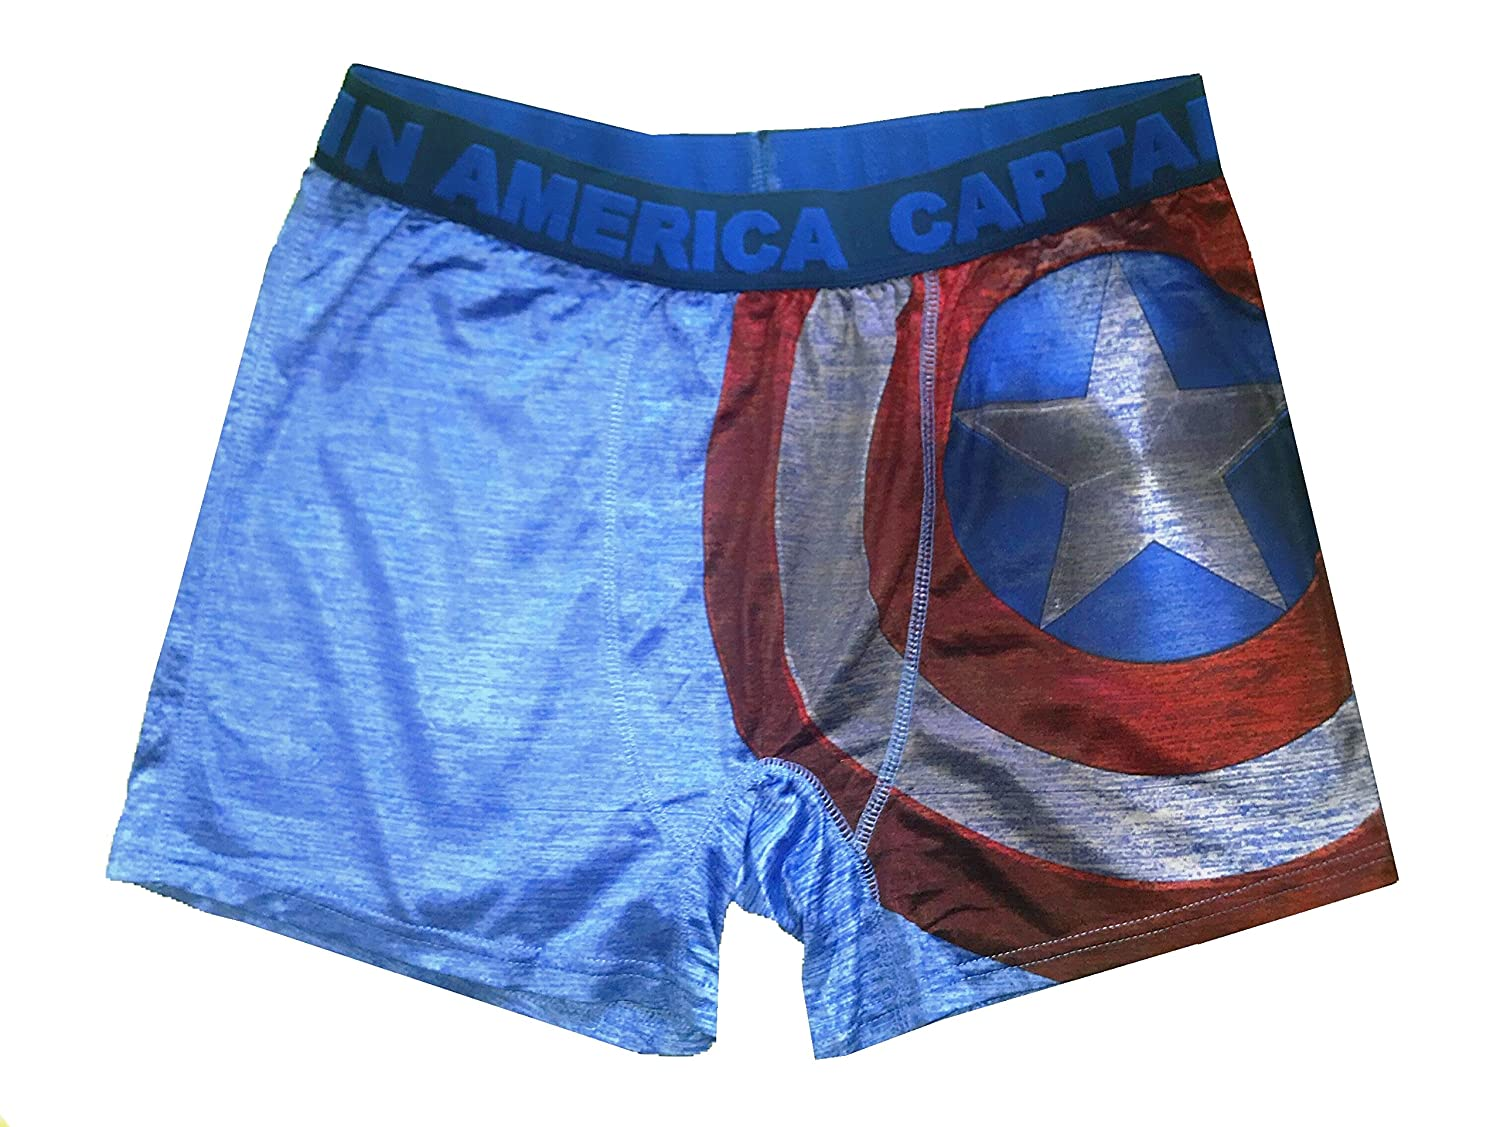 918203bc122b6 Marvel Wear Captain America Storm Shield Boxer Brief For Men at Amazon  Men's Clothing store: